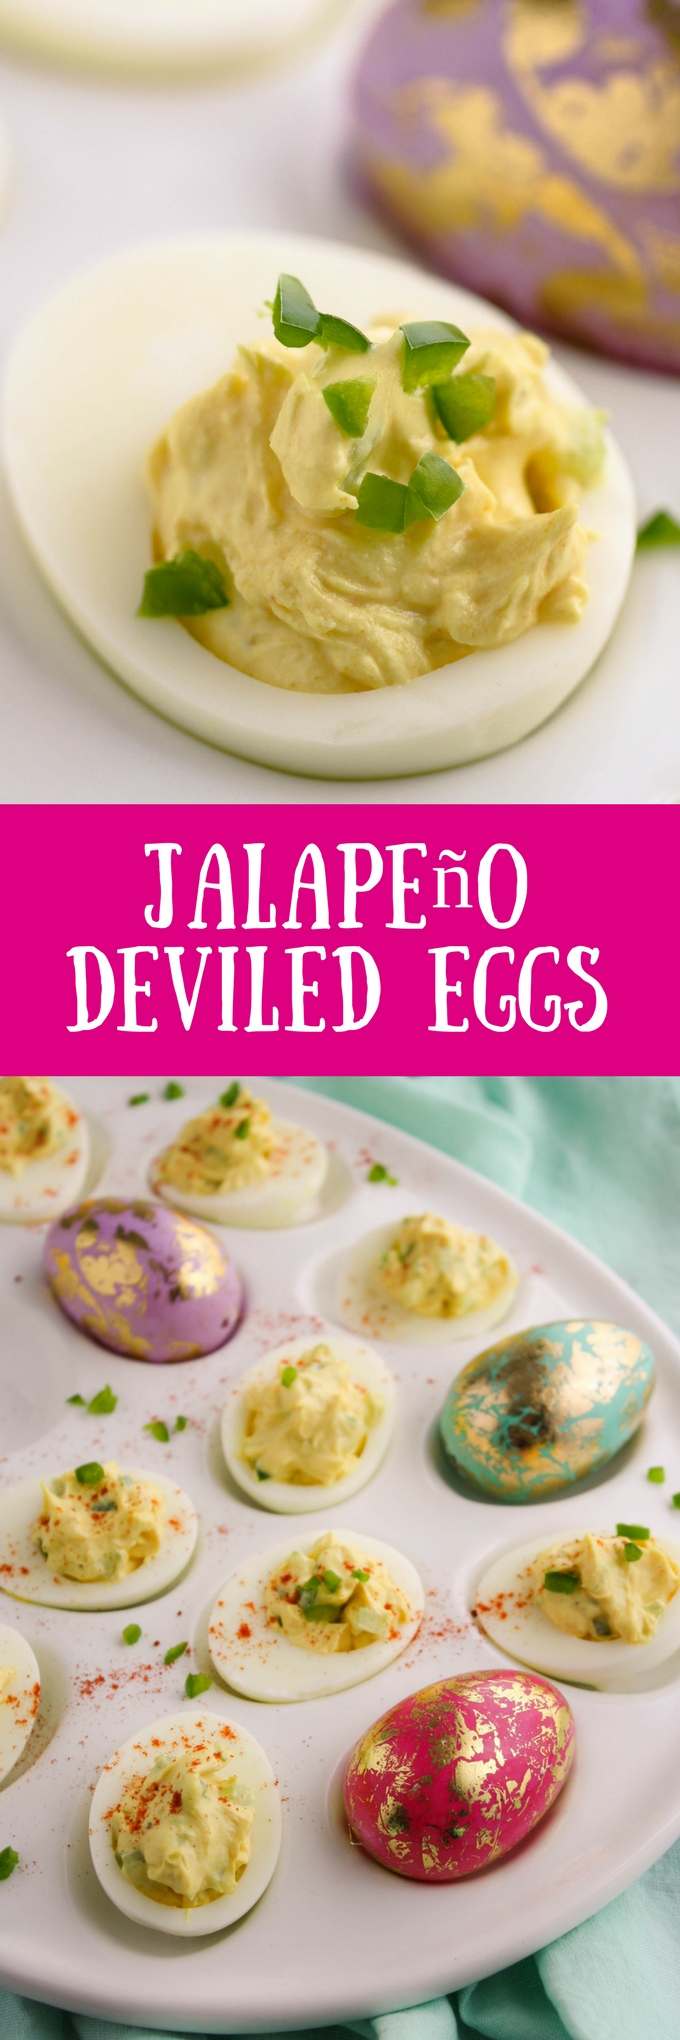 Jalapeño Deviled Eggs are a fun way to start a celebration! Make them for your next get together!